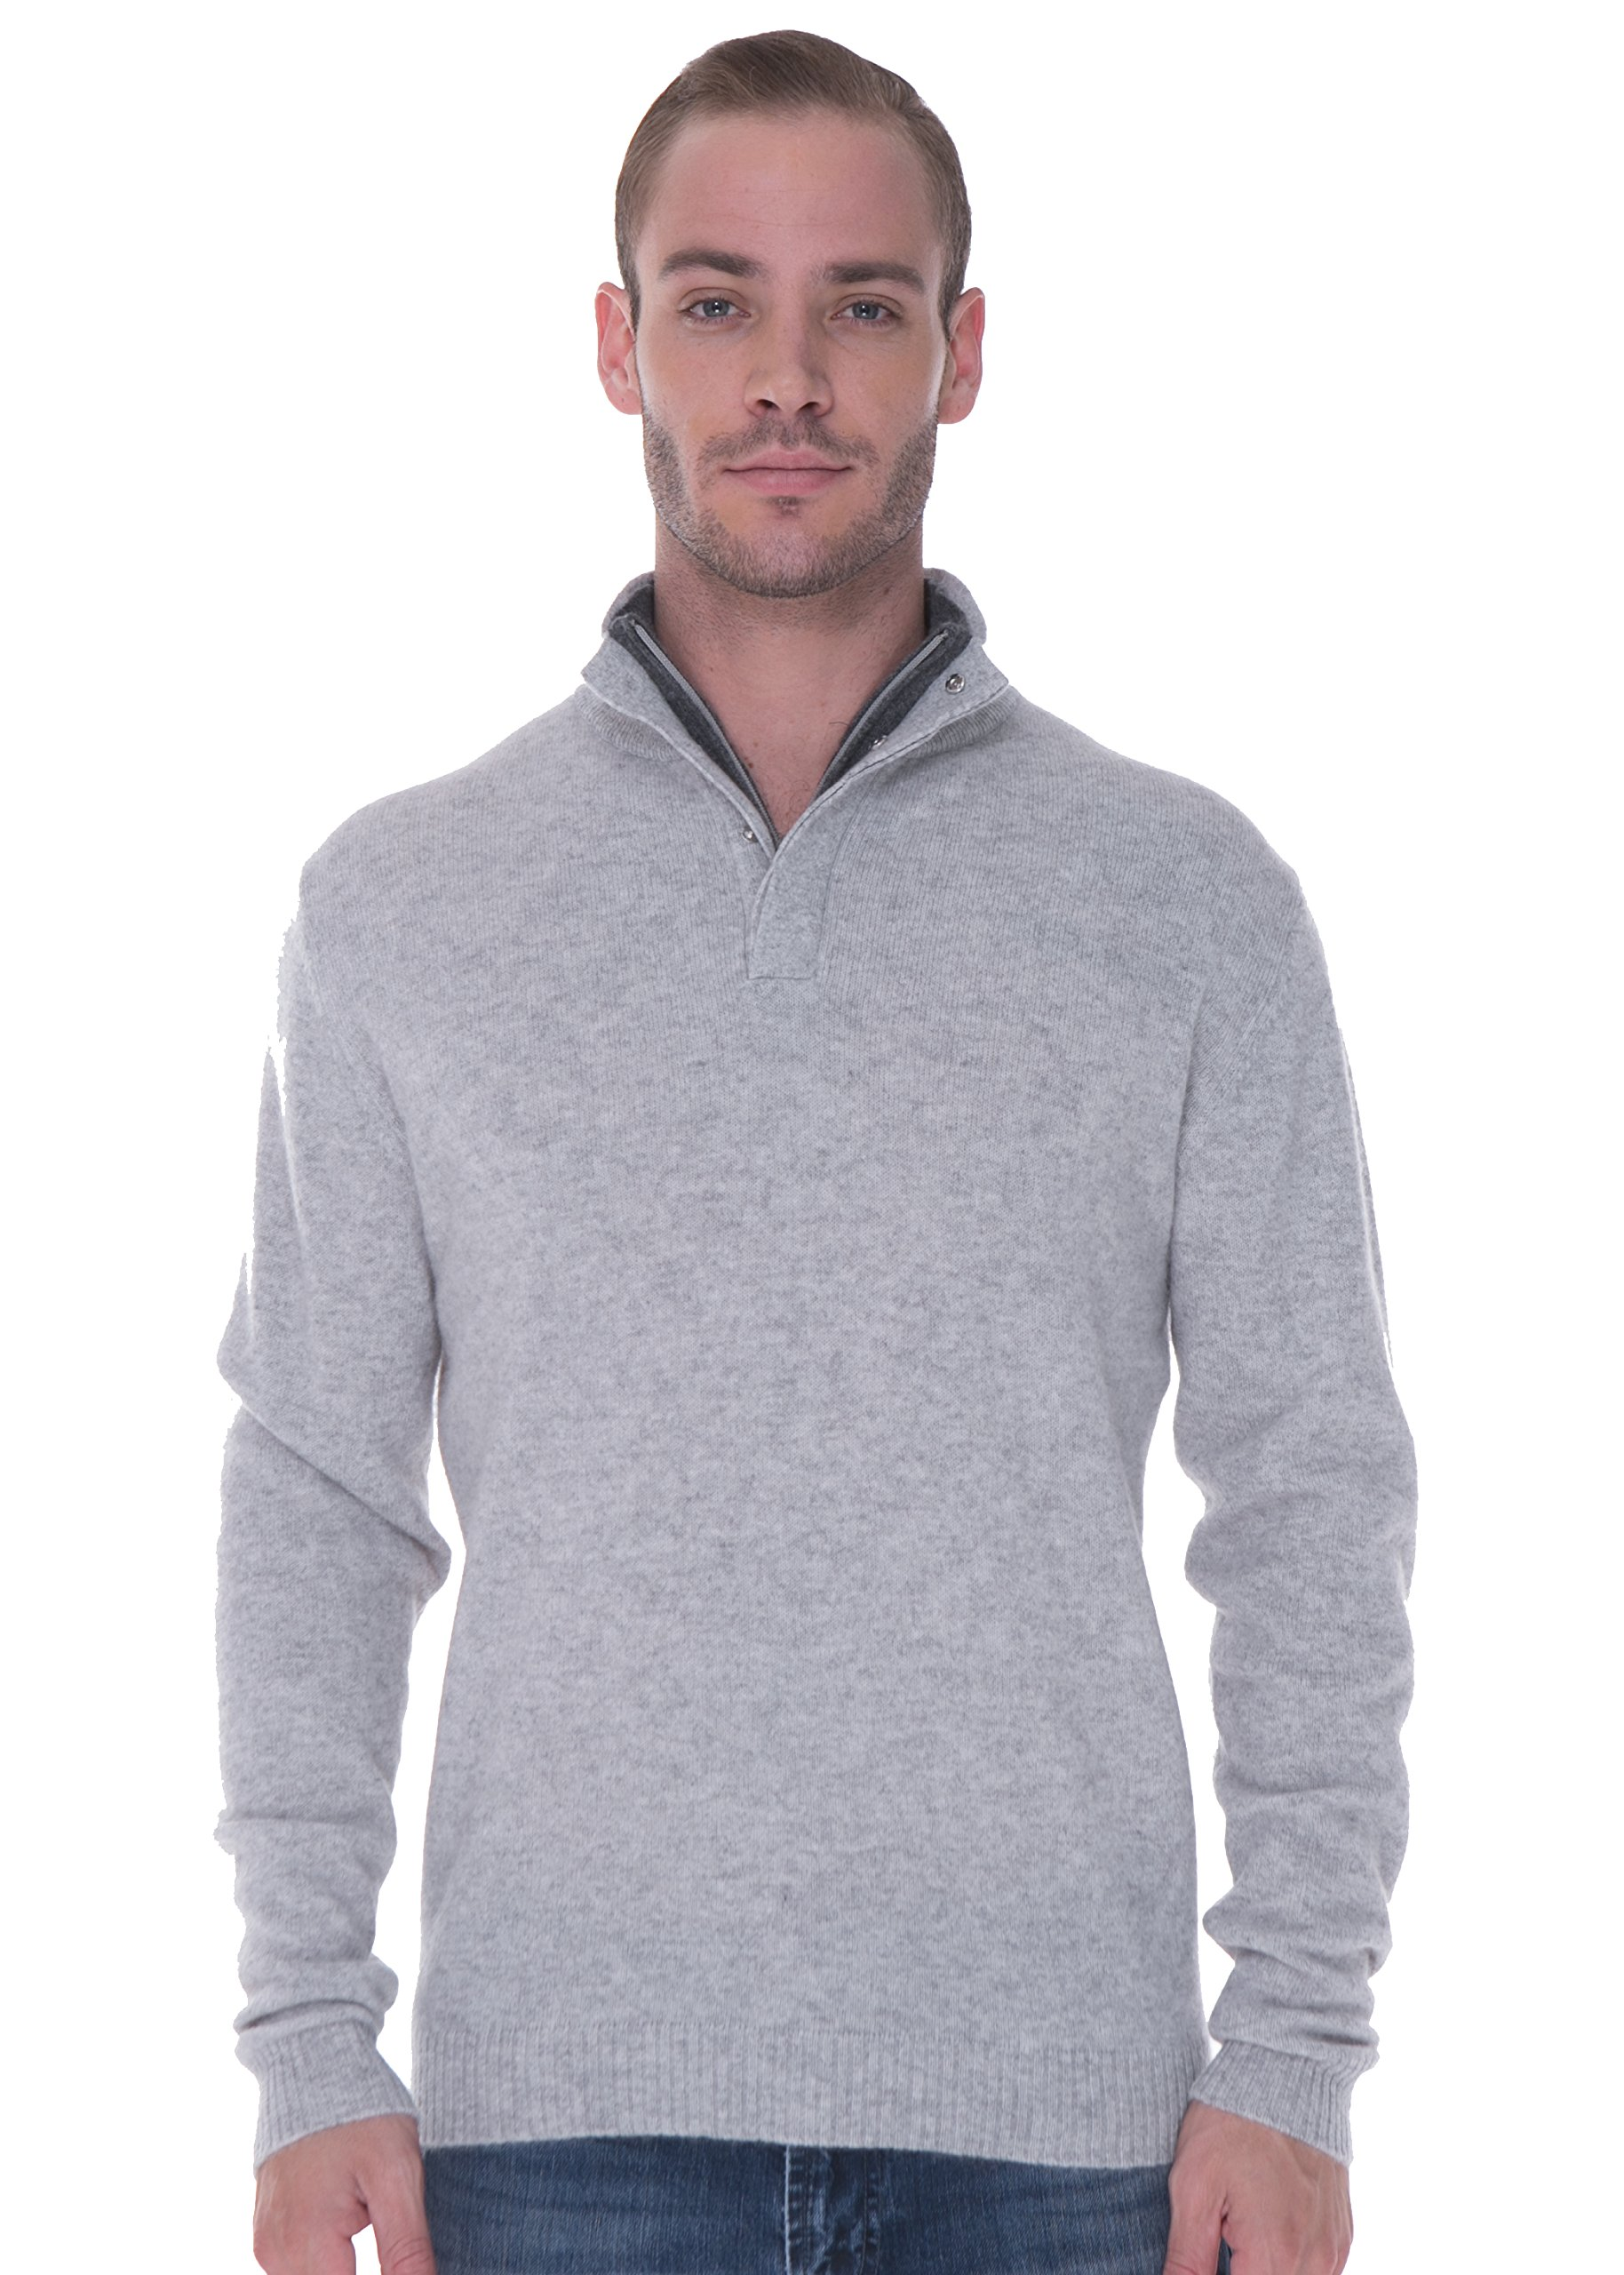 LEBAC Men's 100% Cashmere Sweater Quarter Zip Pullover With Elbow Patches by LEBAC (Image #1)